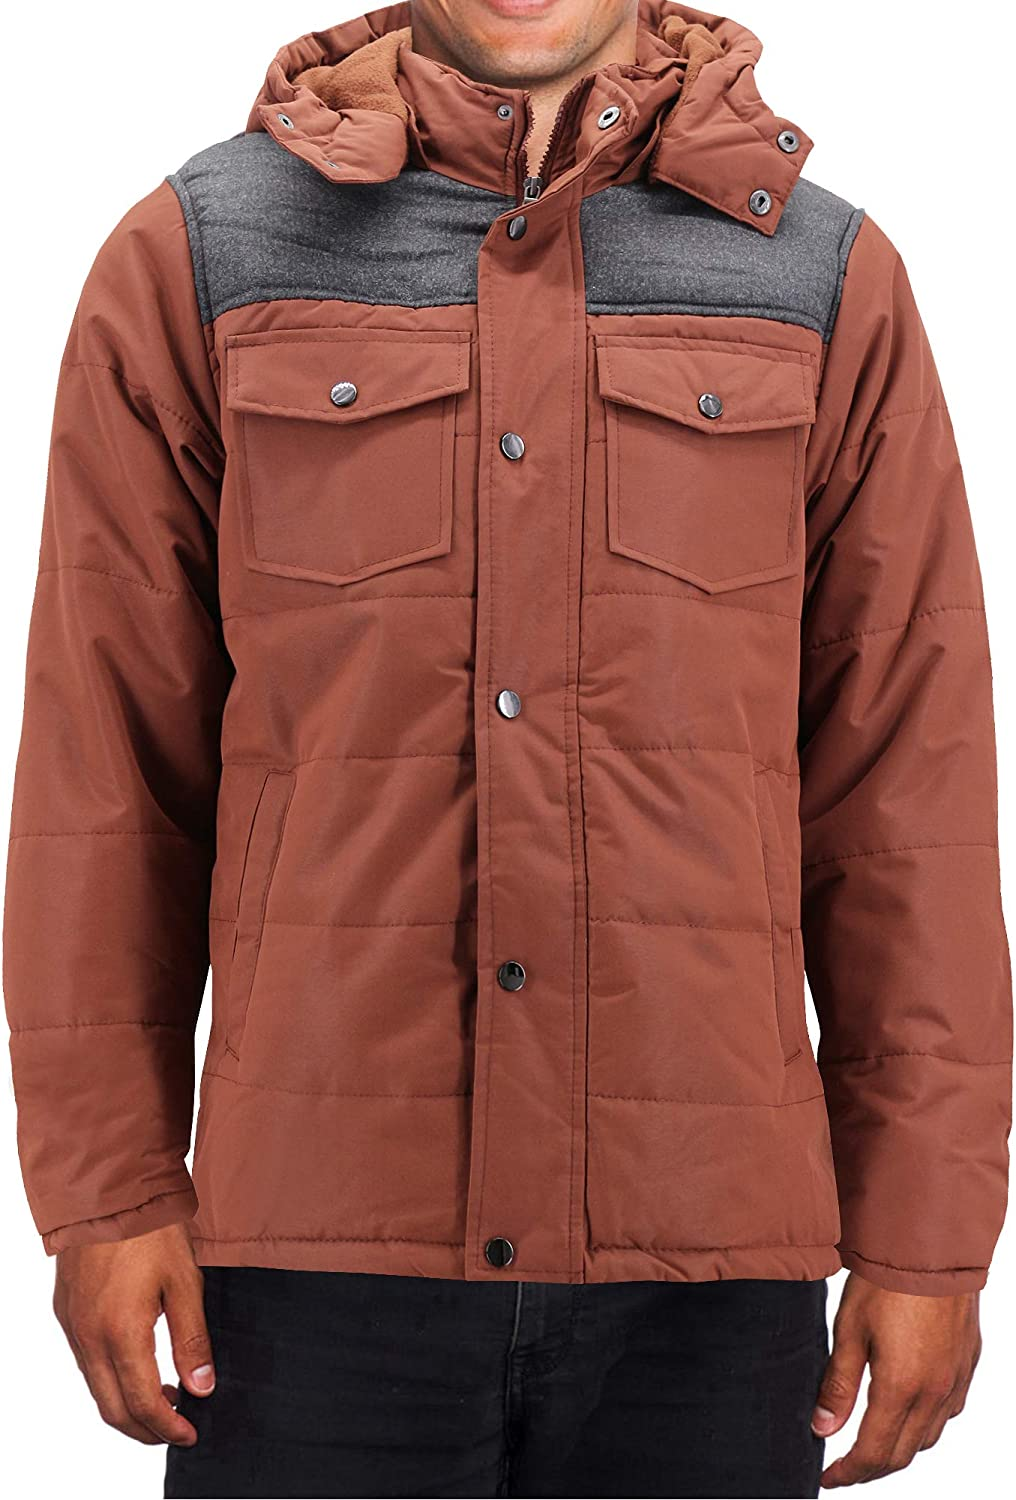 Men's Heavyweight Water And Wind Resistant Removable Hood Insulated Jacket